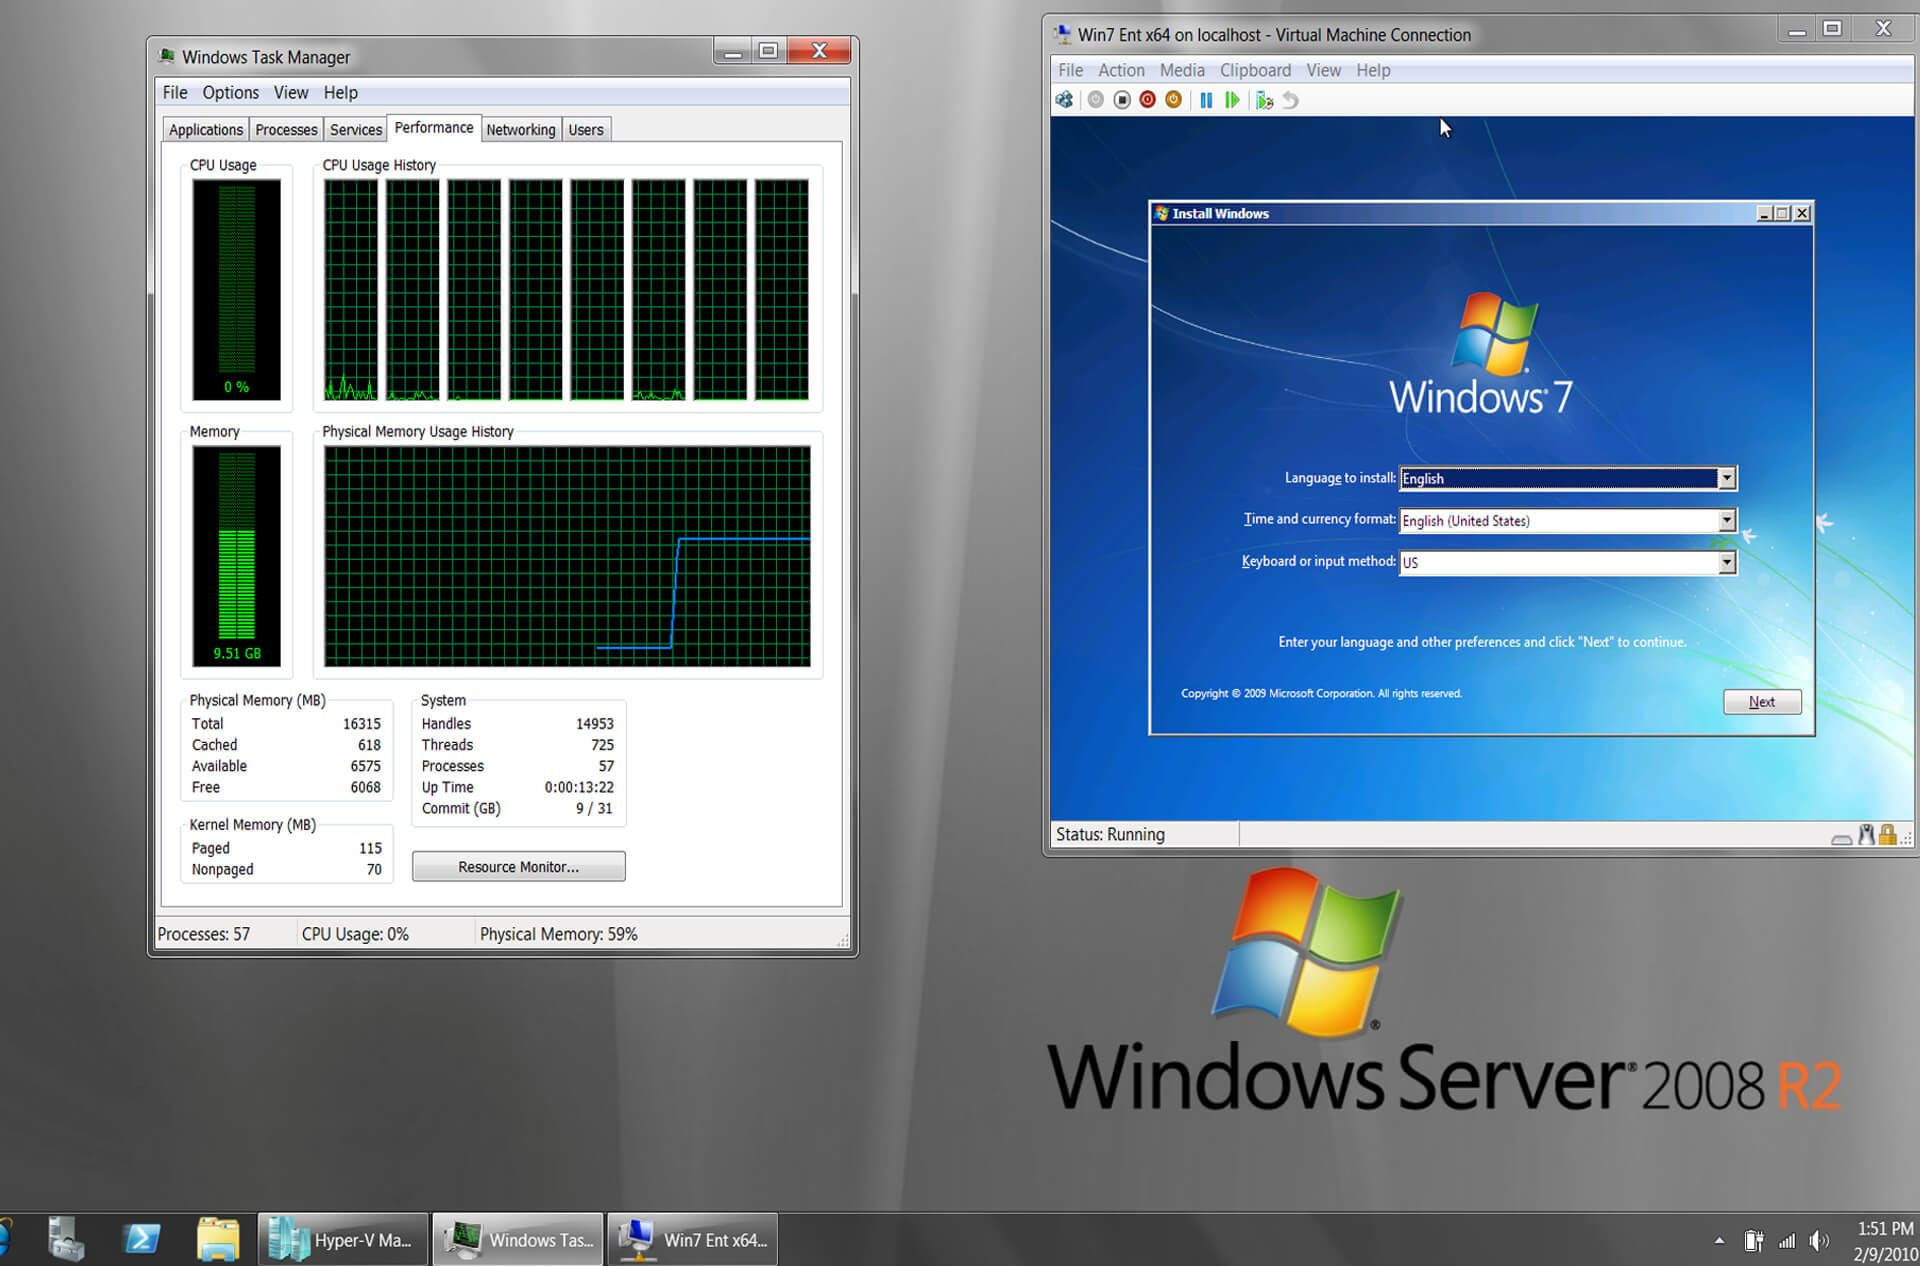 windows-server-2008-performance